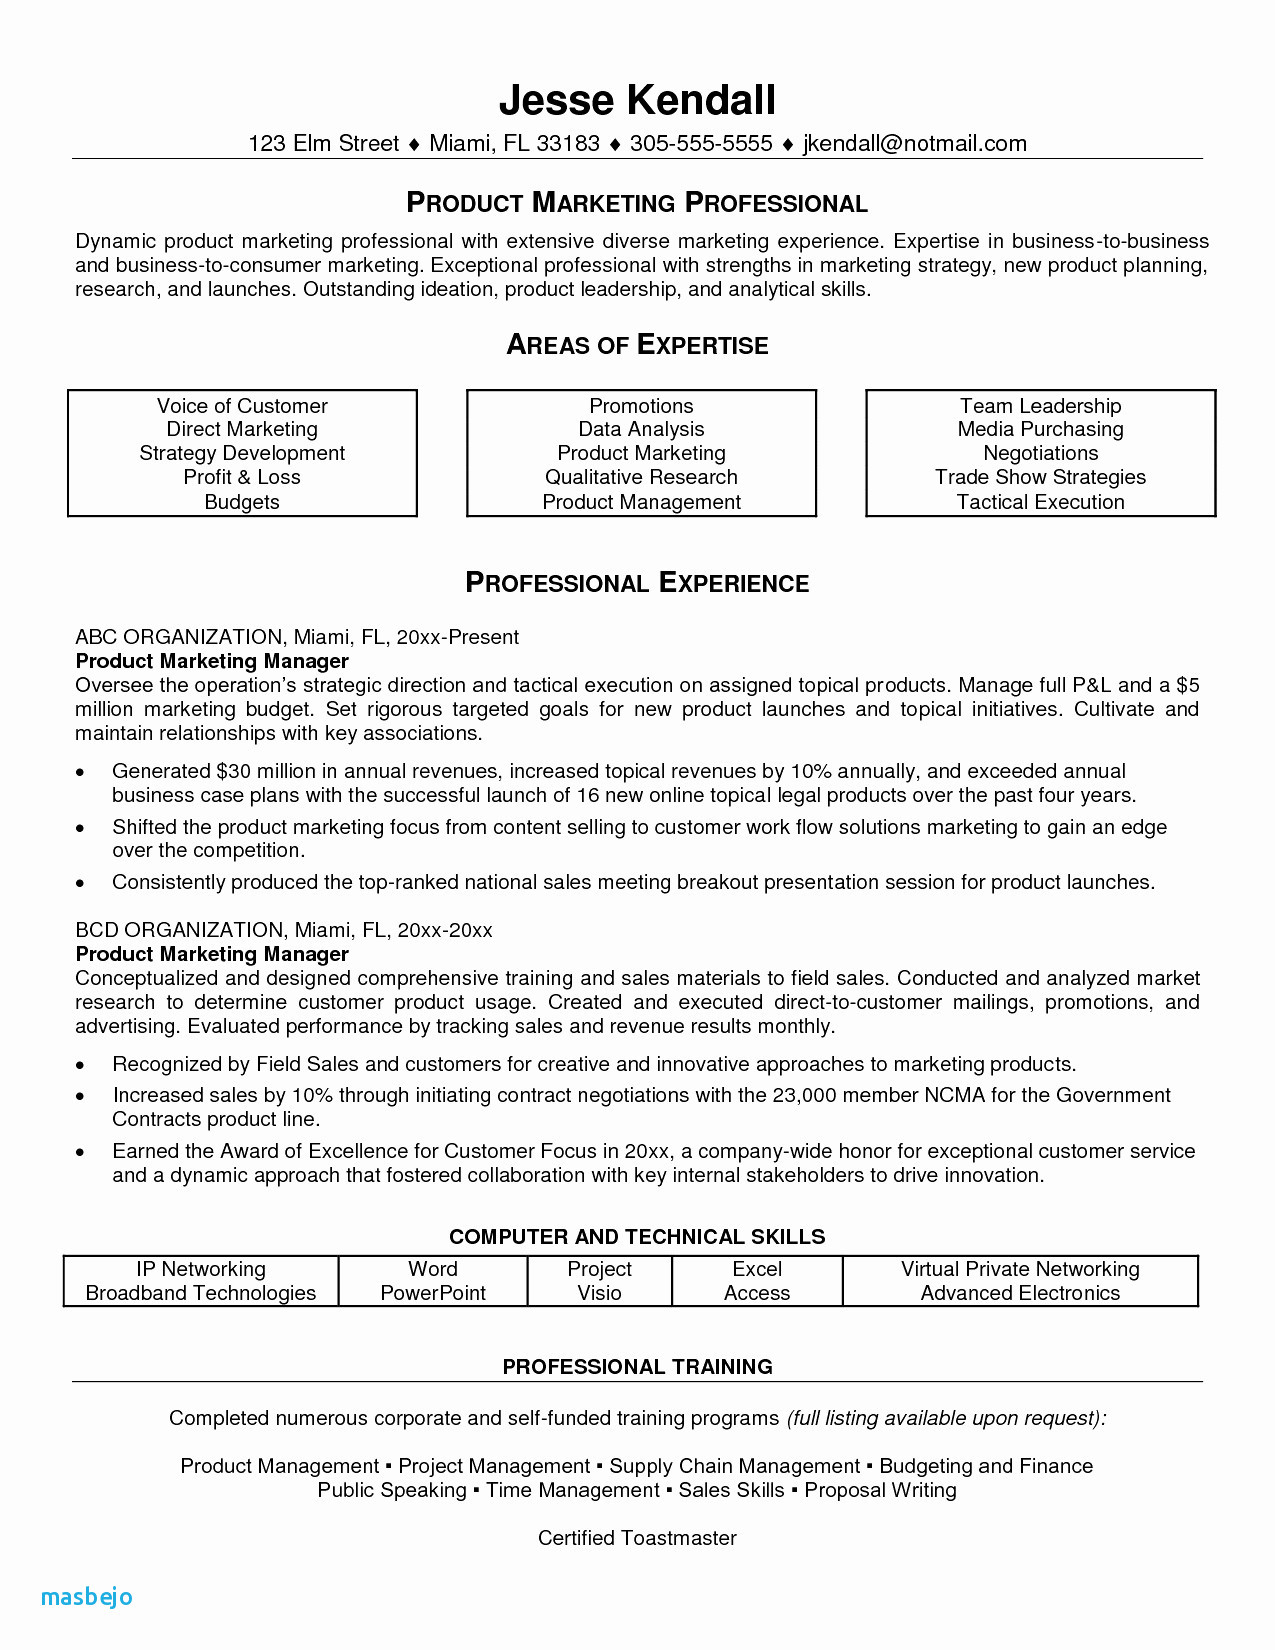 Marketing Skills Resume - Marketing Skills Resume Elegant Research Skills Resume New Paralegal